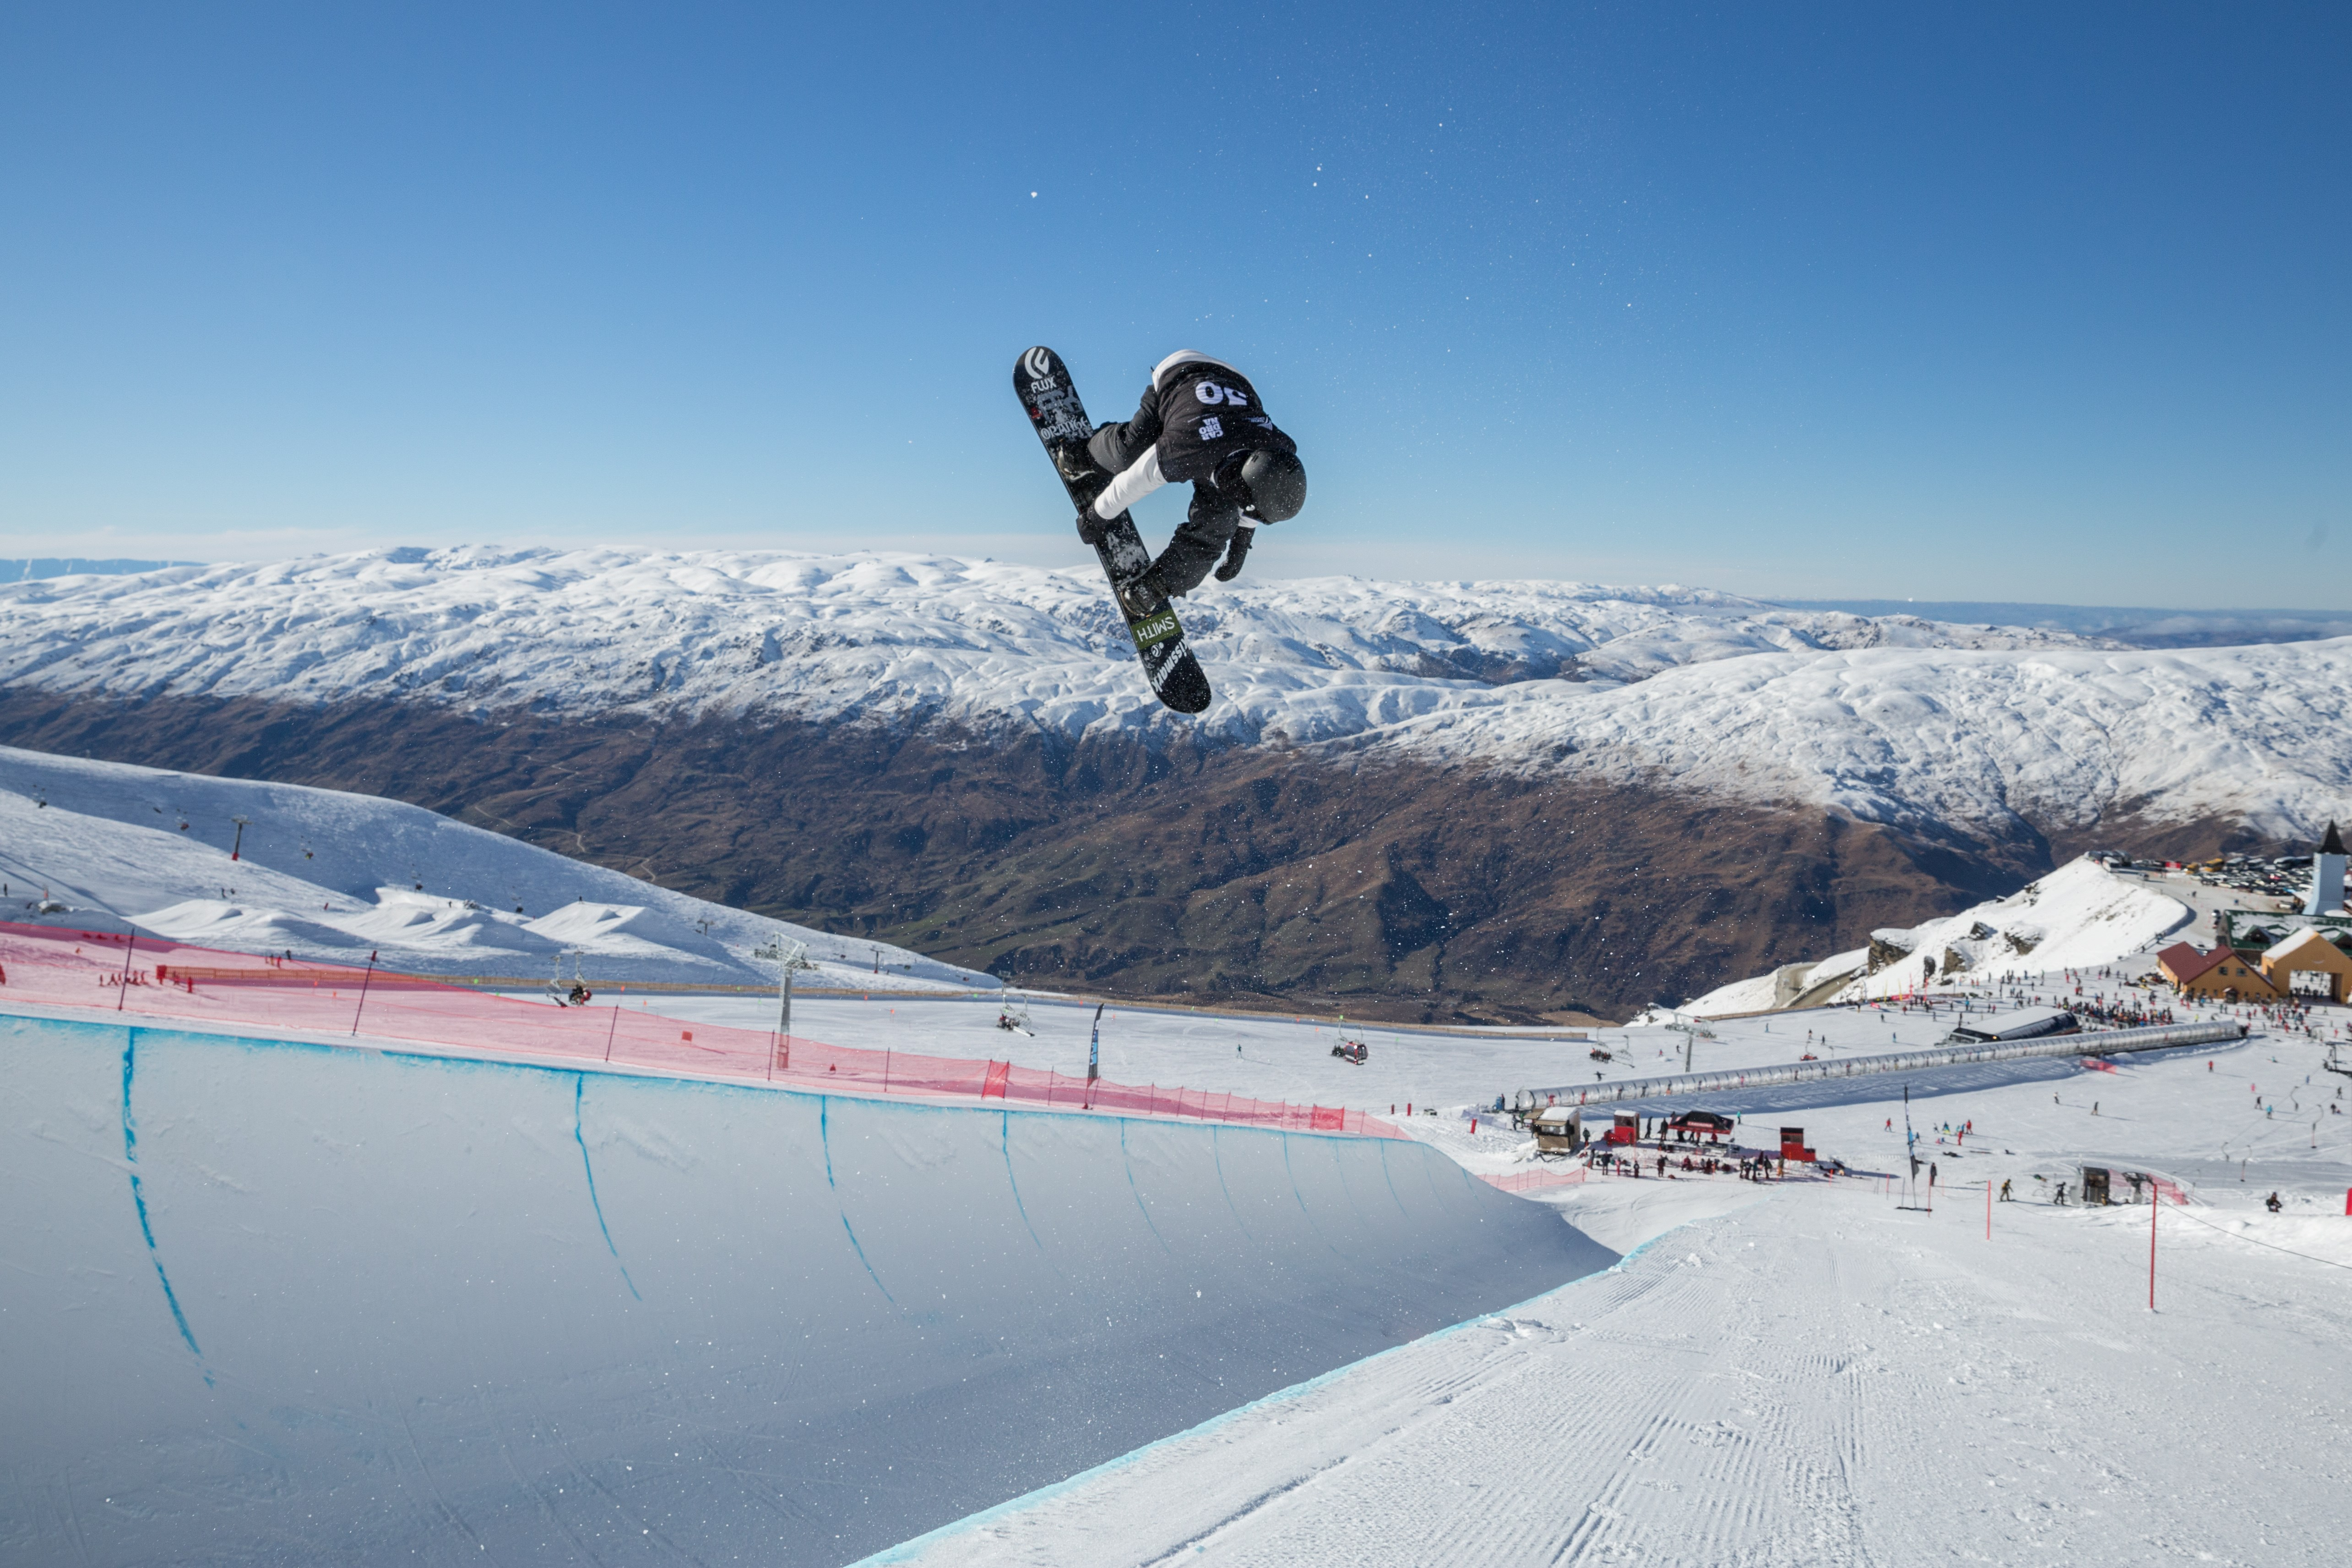 snowboard halfpipe at the audi quattro winter games nz at Cardrona